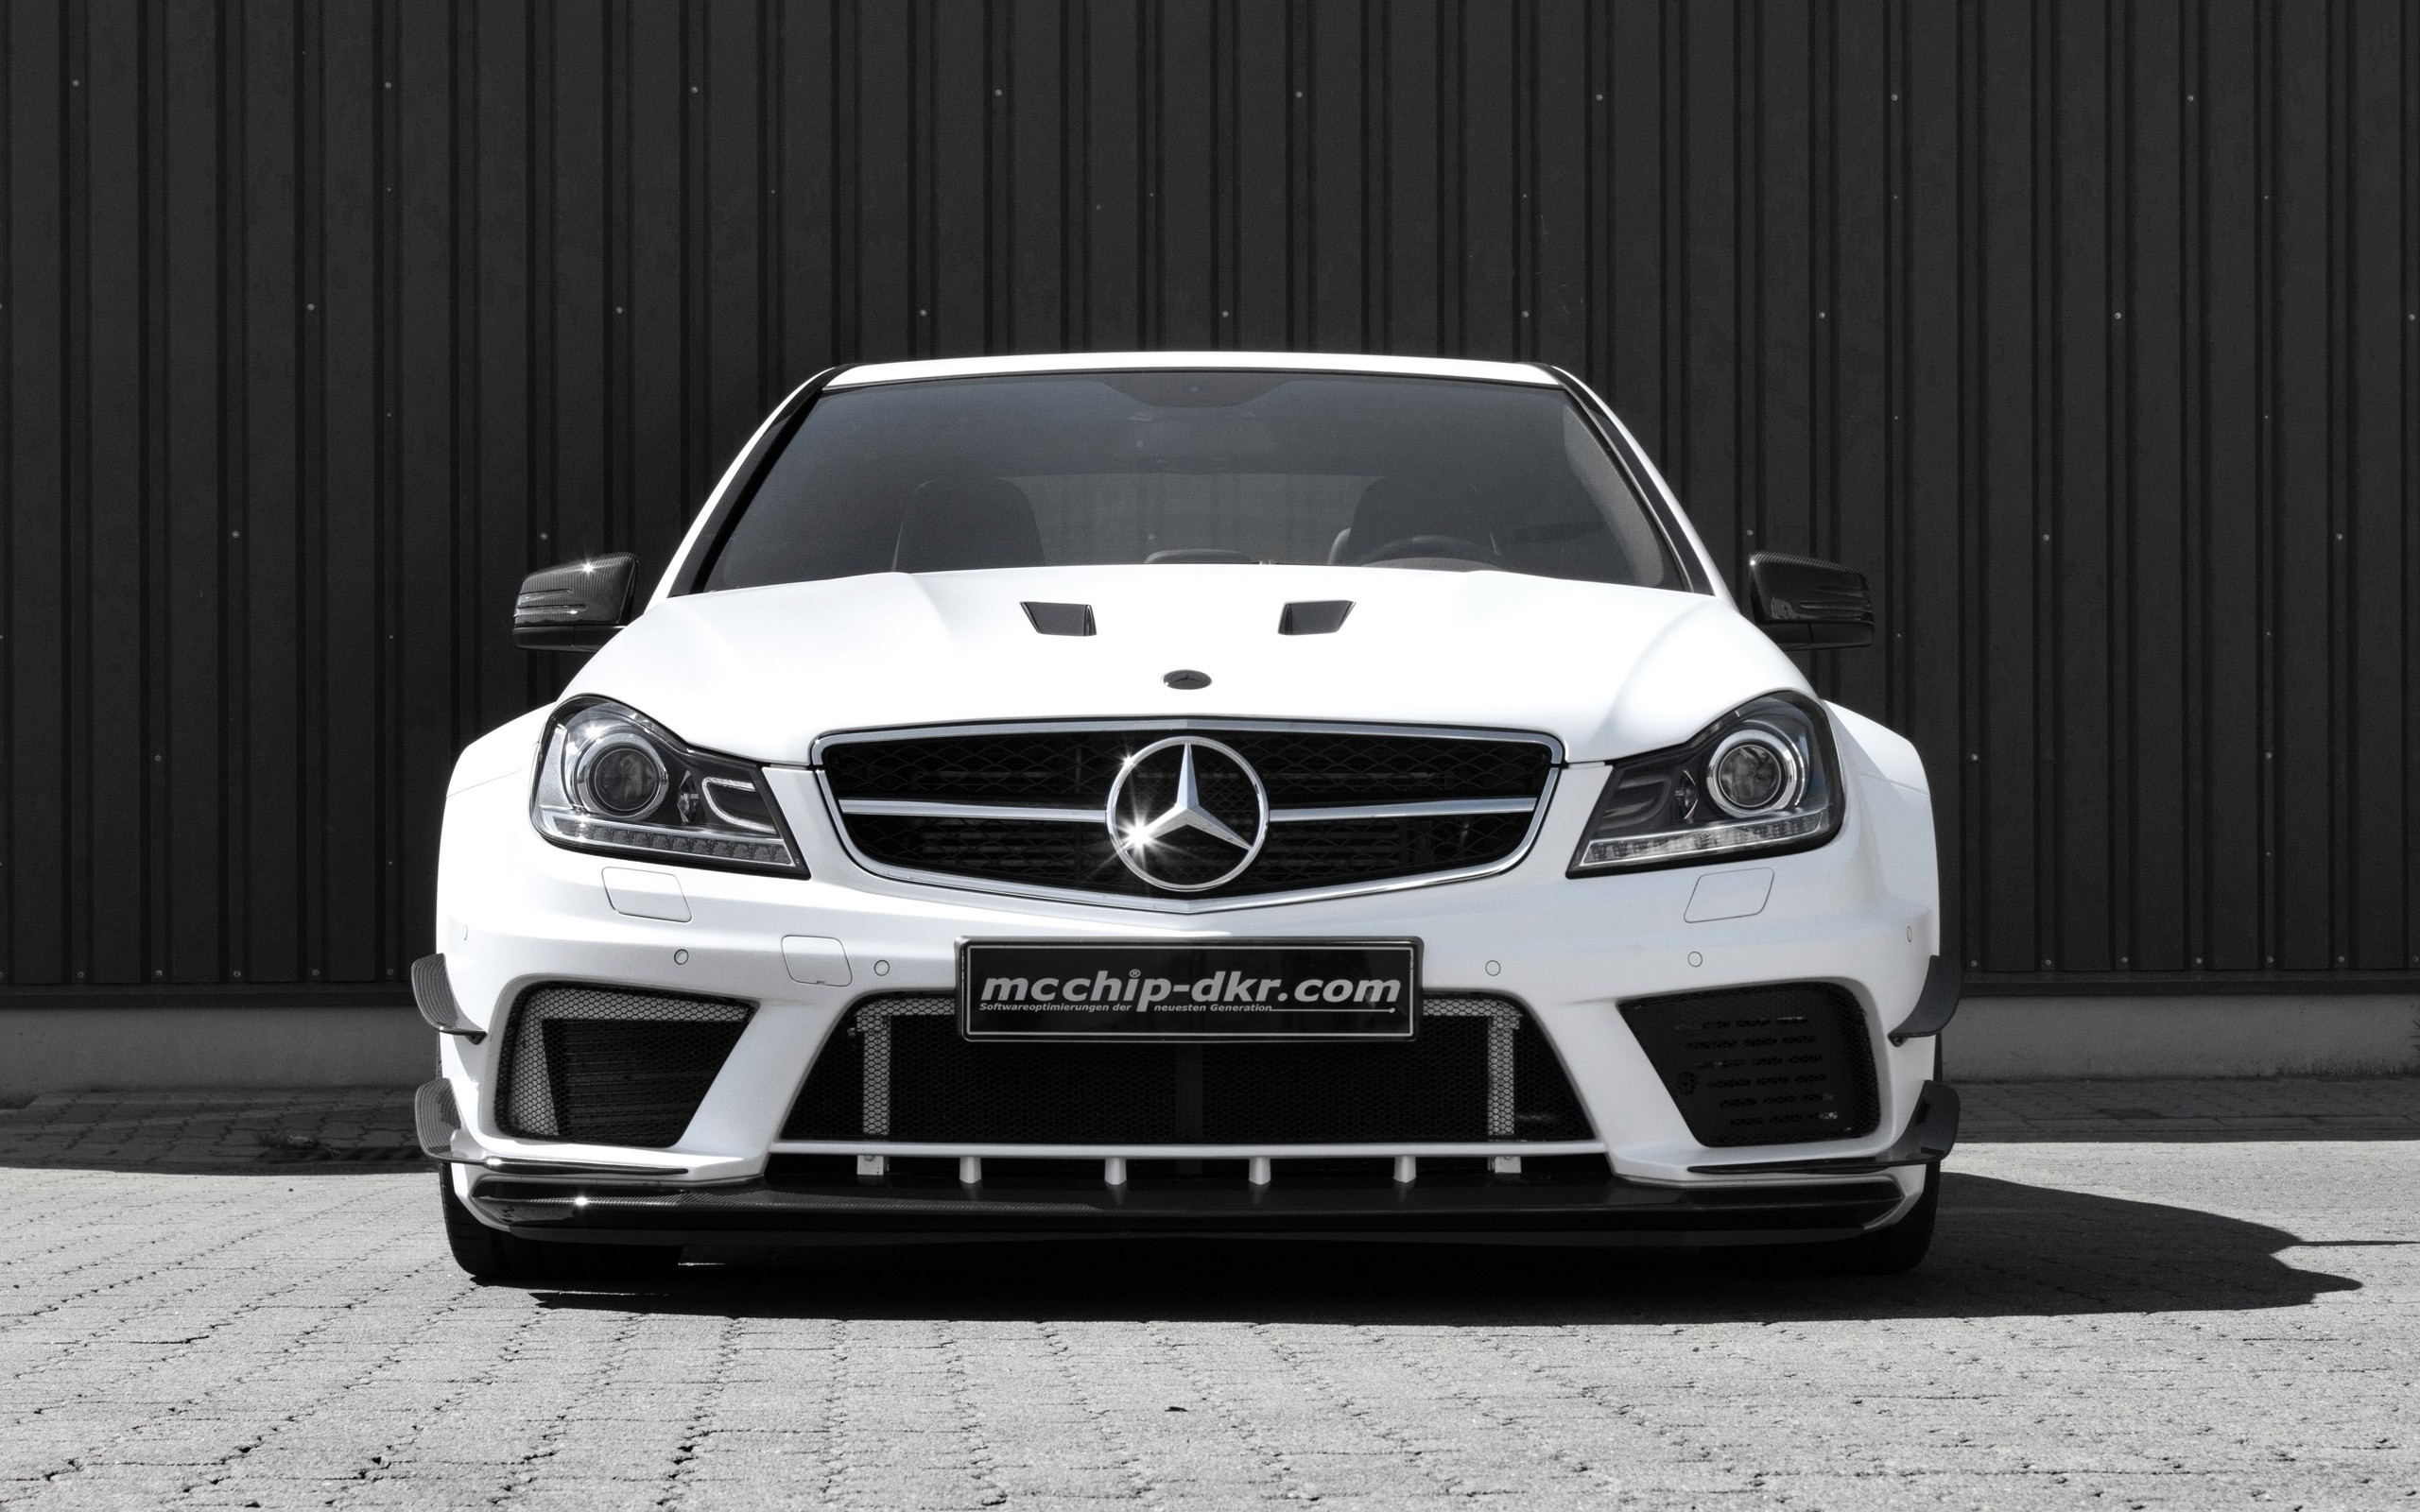 2014 mercedes benz c63 amg mc8xx by mcchip dkr wallpaper hd car wallpapers id 4705. Black Bedroom Furniture Sets. Home Design Ideas